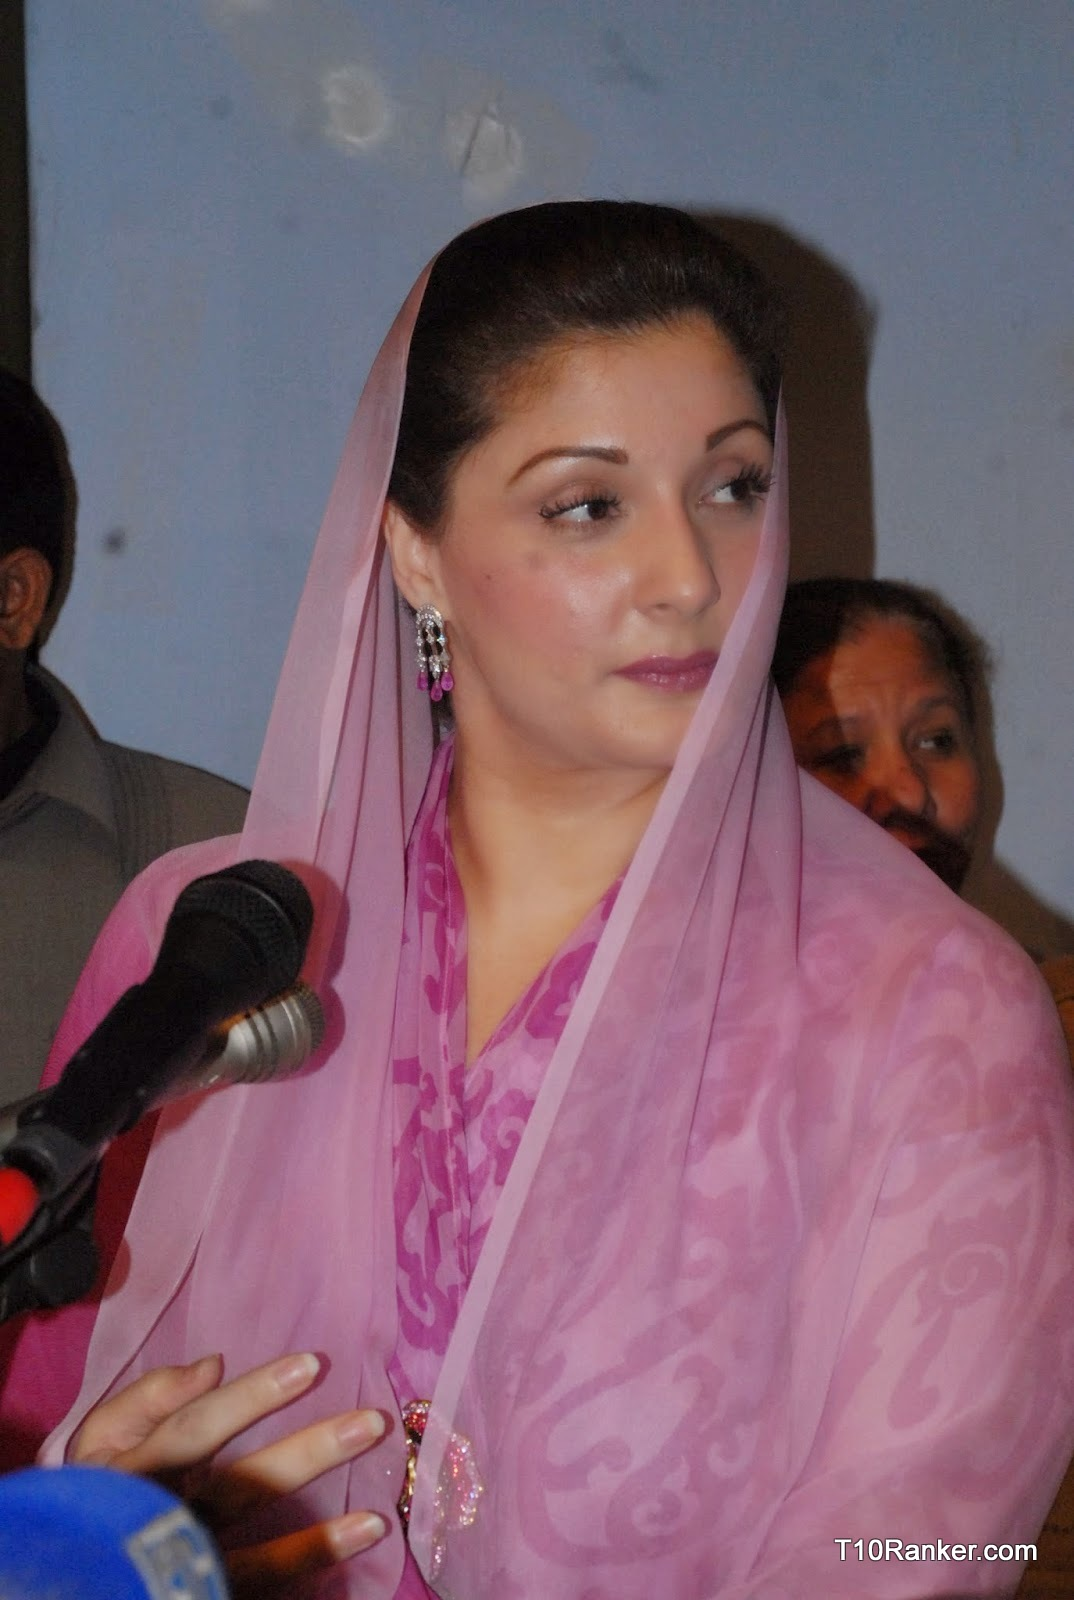 Hot Sexy Maryam Nawaz Sharif Hd Wallpapers Pics Free Busty Images, Photos, Reviews